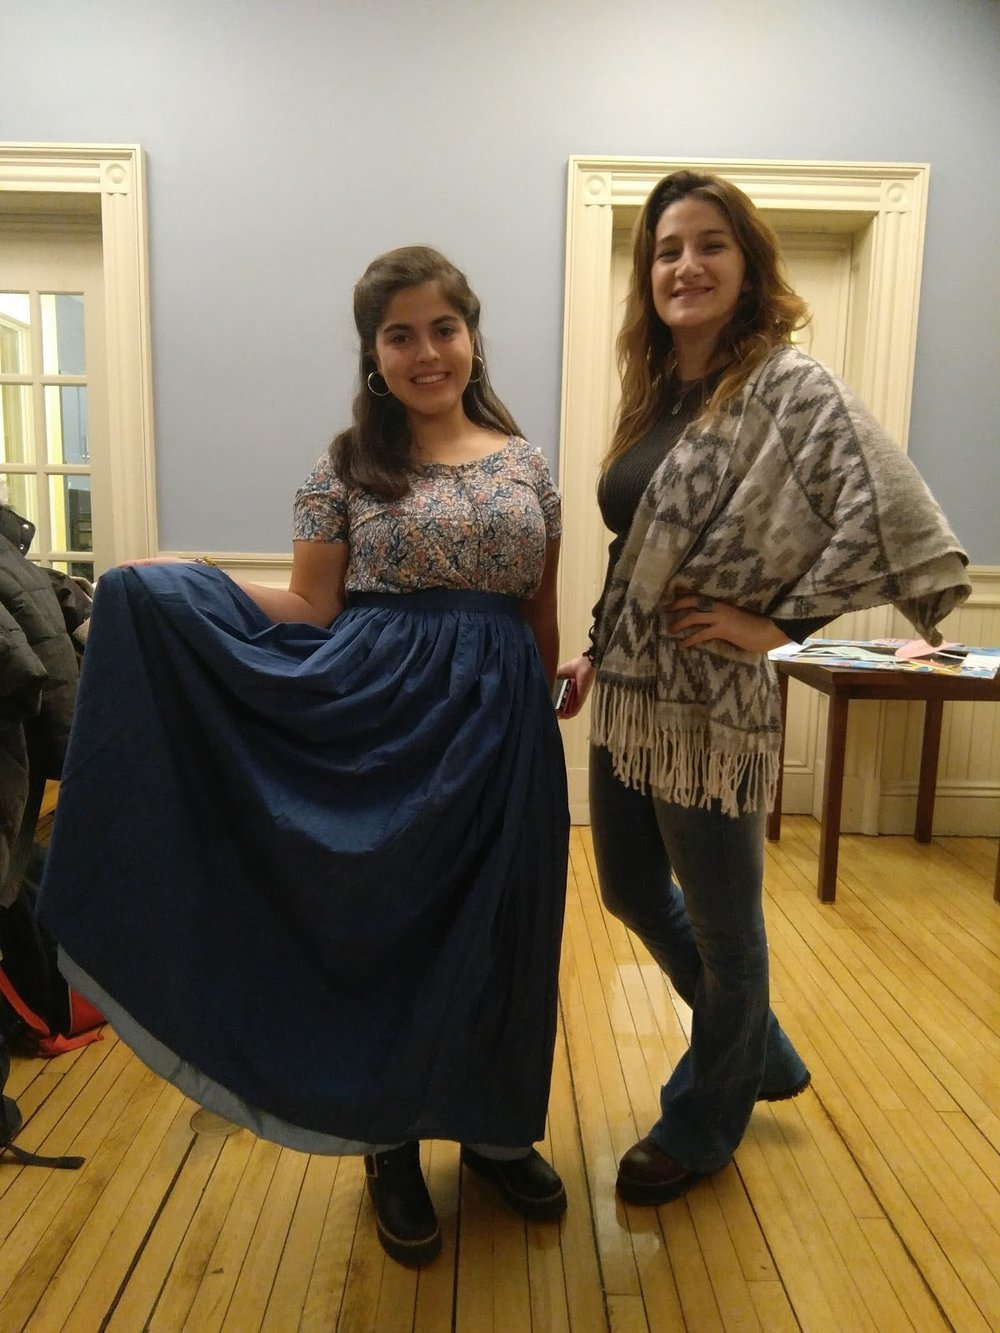 Photos courtesy of Virginia Guevara Friends of Fulbright scholars, members of the LLC Spanish floor and friends gathered to celebrate Argentinian culture